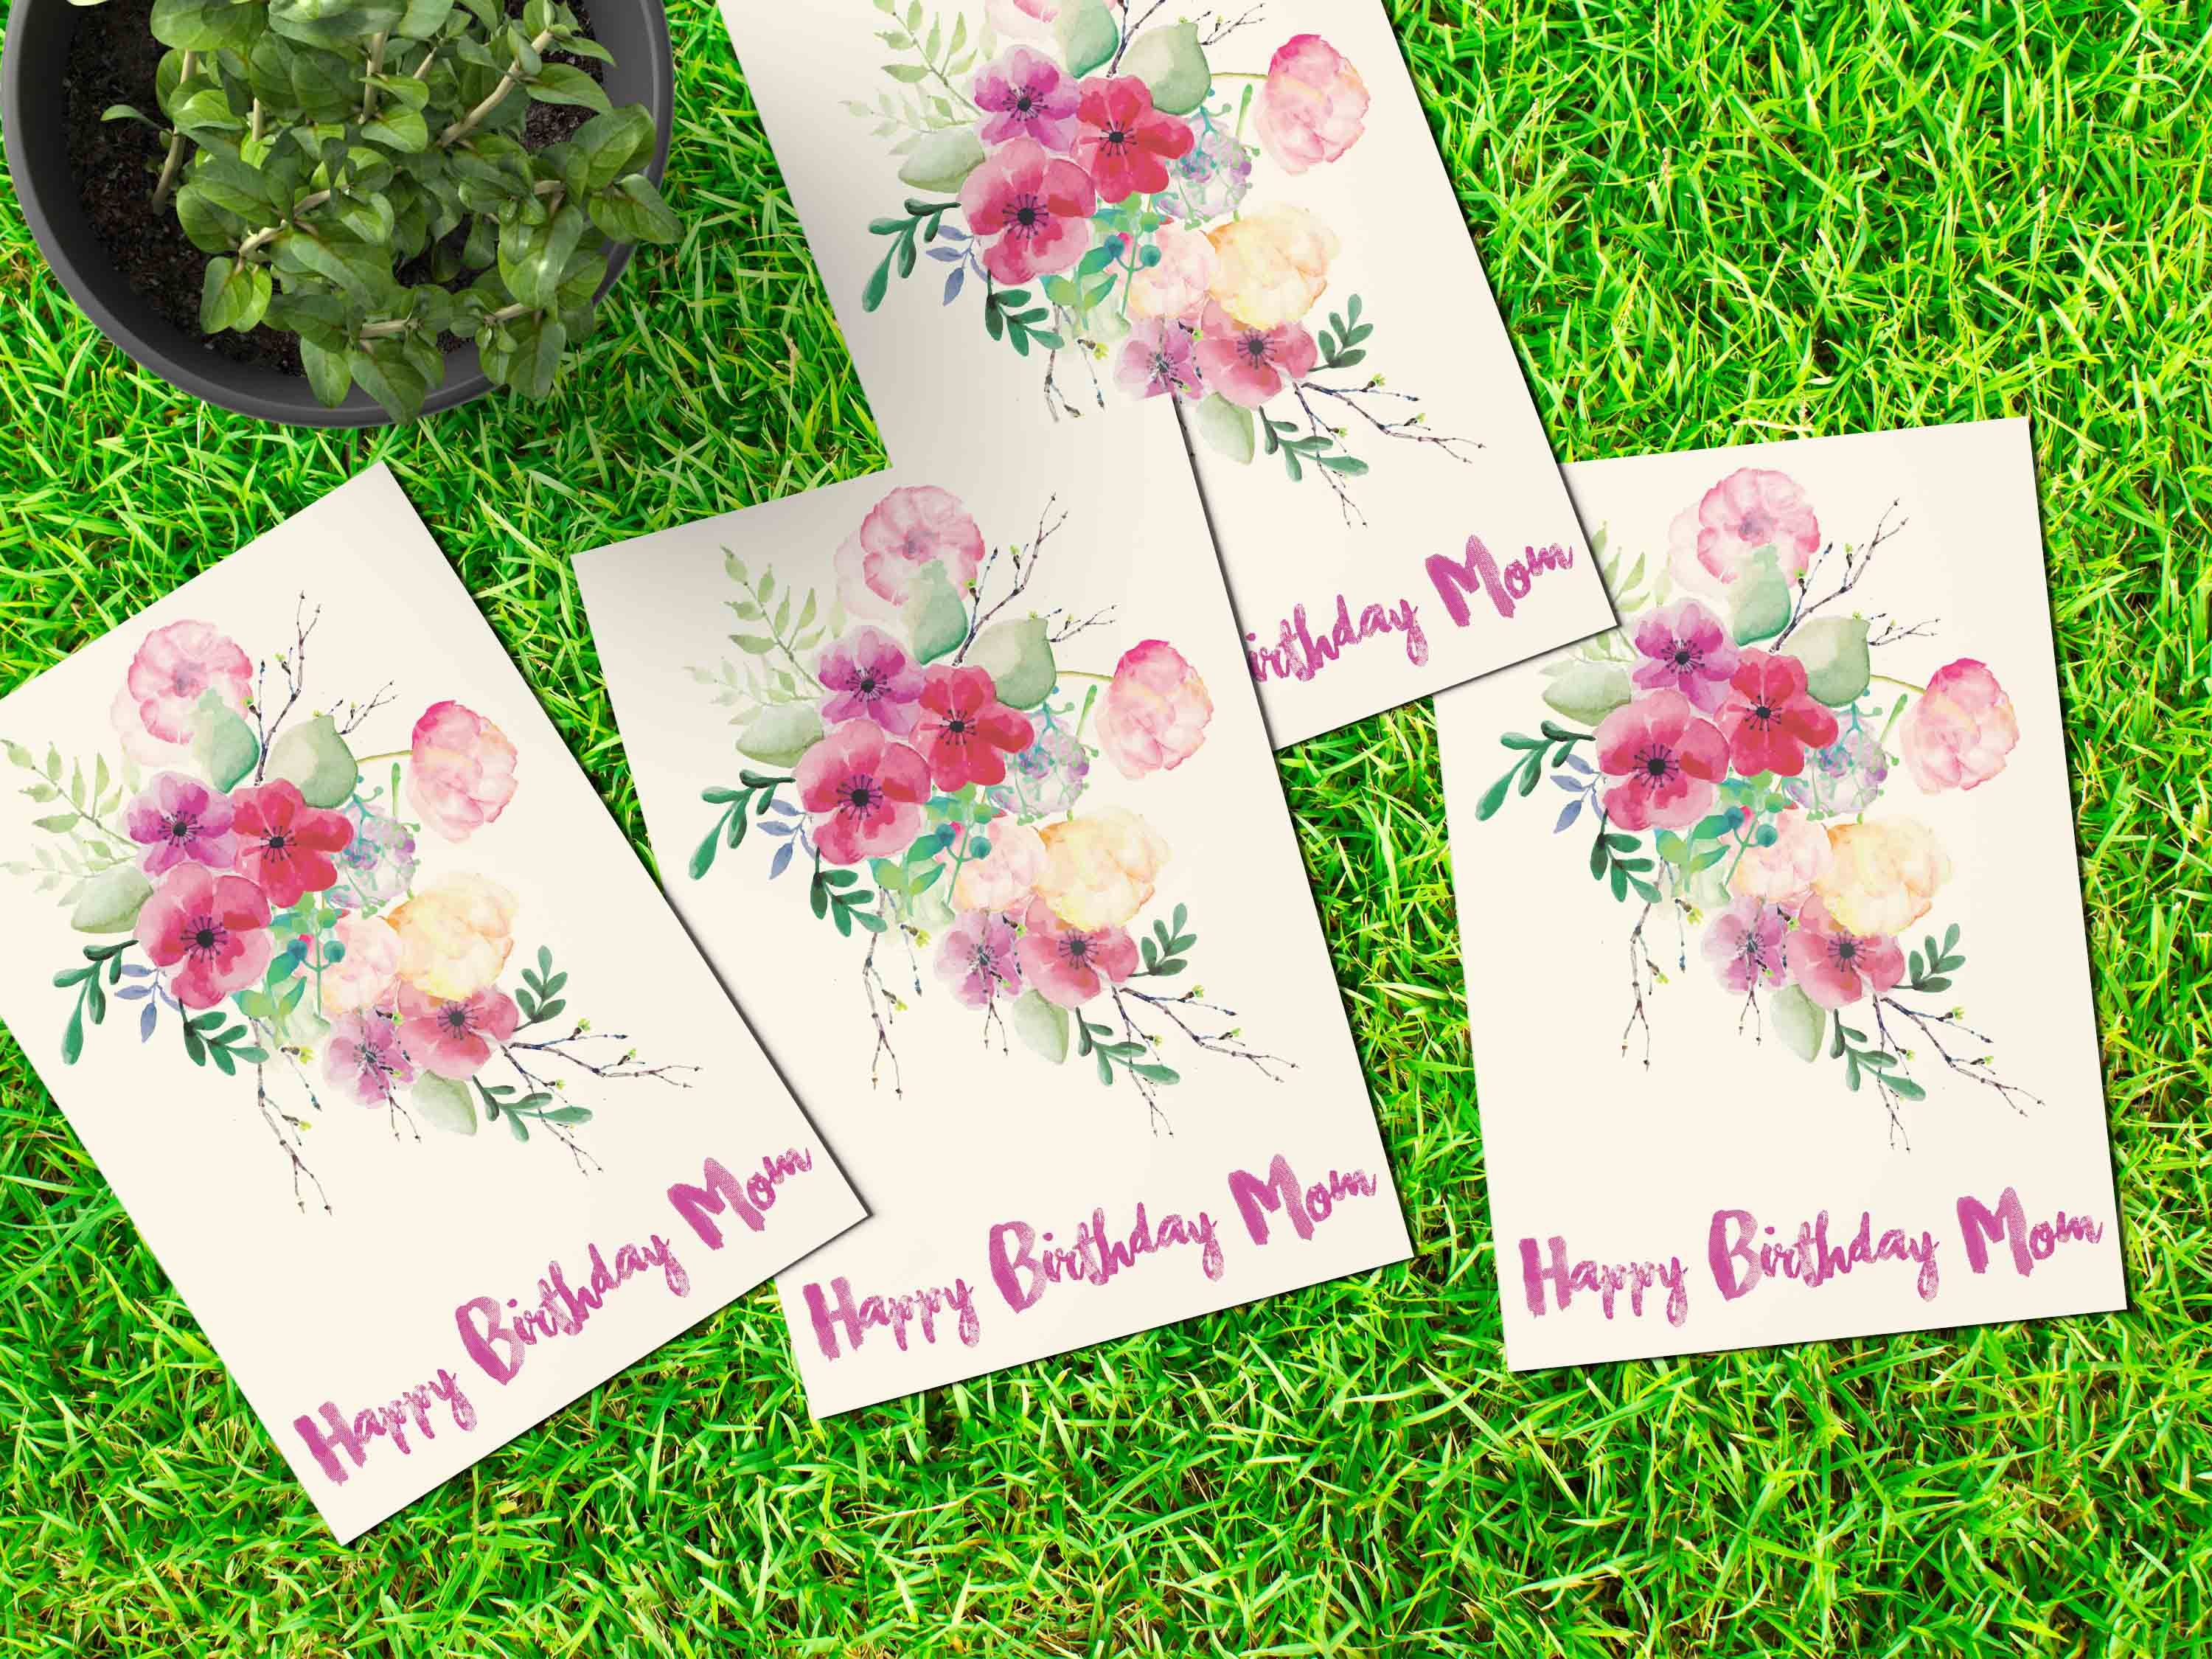 Birthday cards for mother with gathering of flowers on it birthday cards for mother with gathering of flowers on it izmirmasajfo